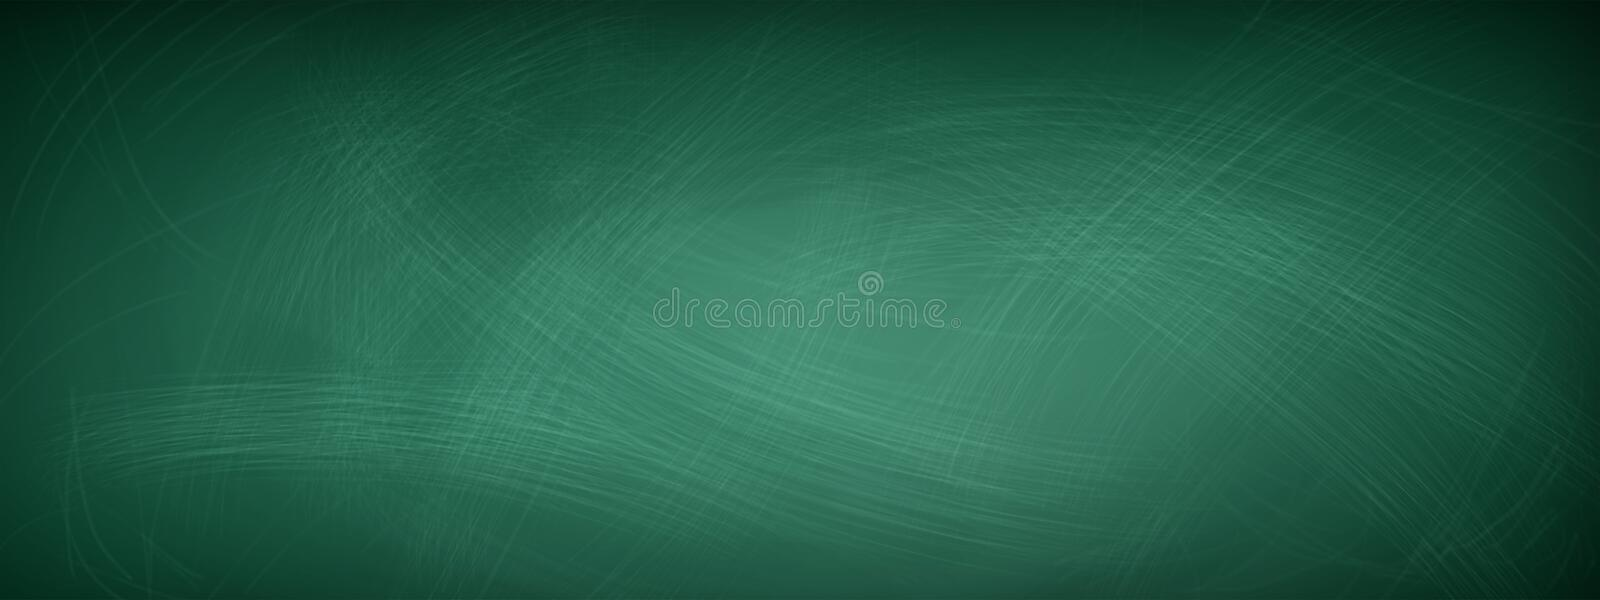 Rubbed out chalk on a greenboard - background concept royalty free stock photo